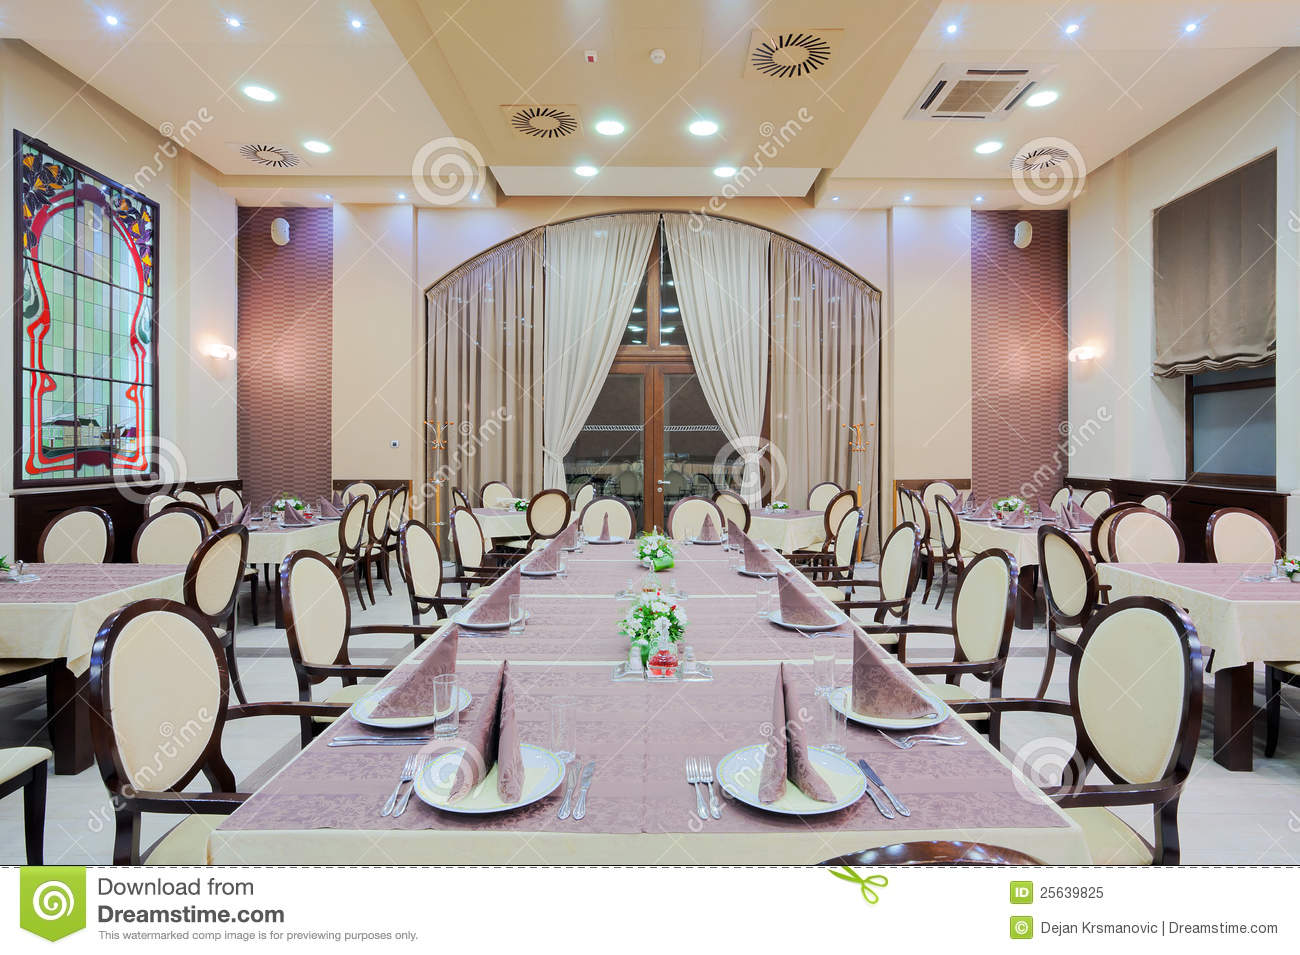 Grande table de restaurant image stock image du plafond for Grande table cuisine